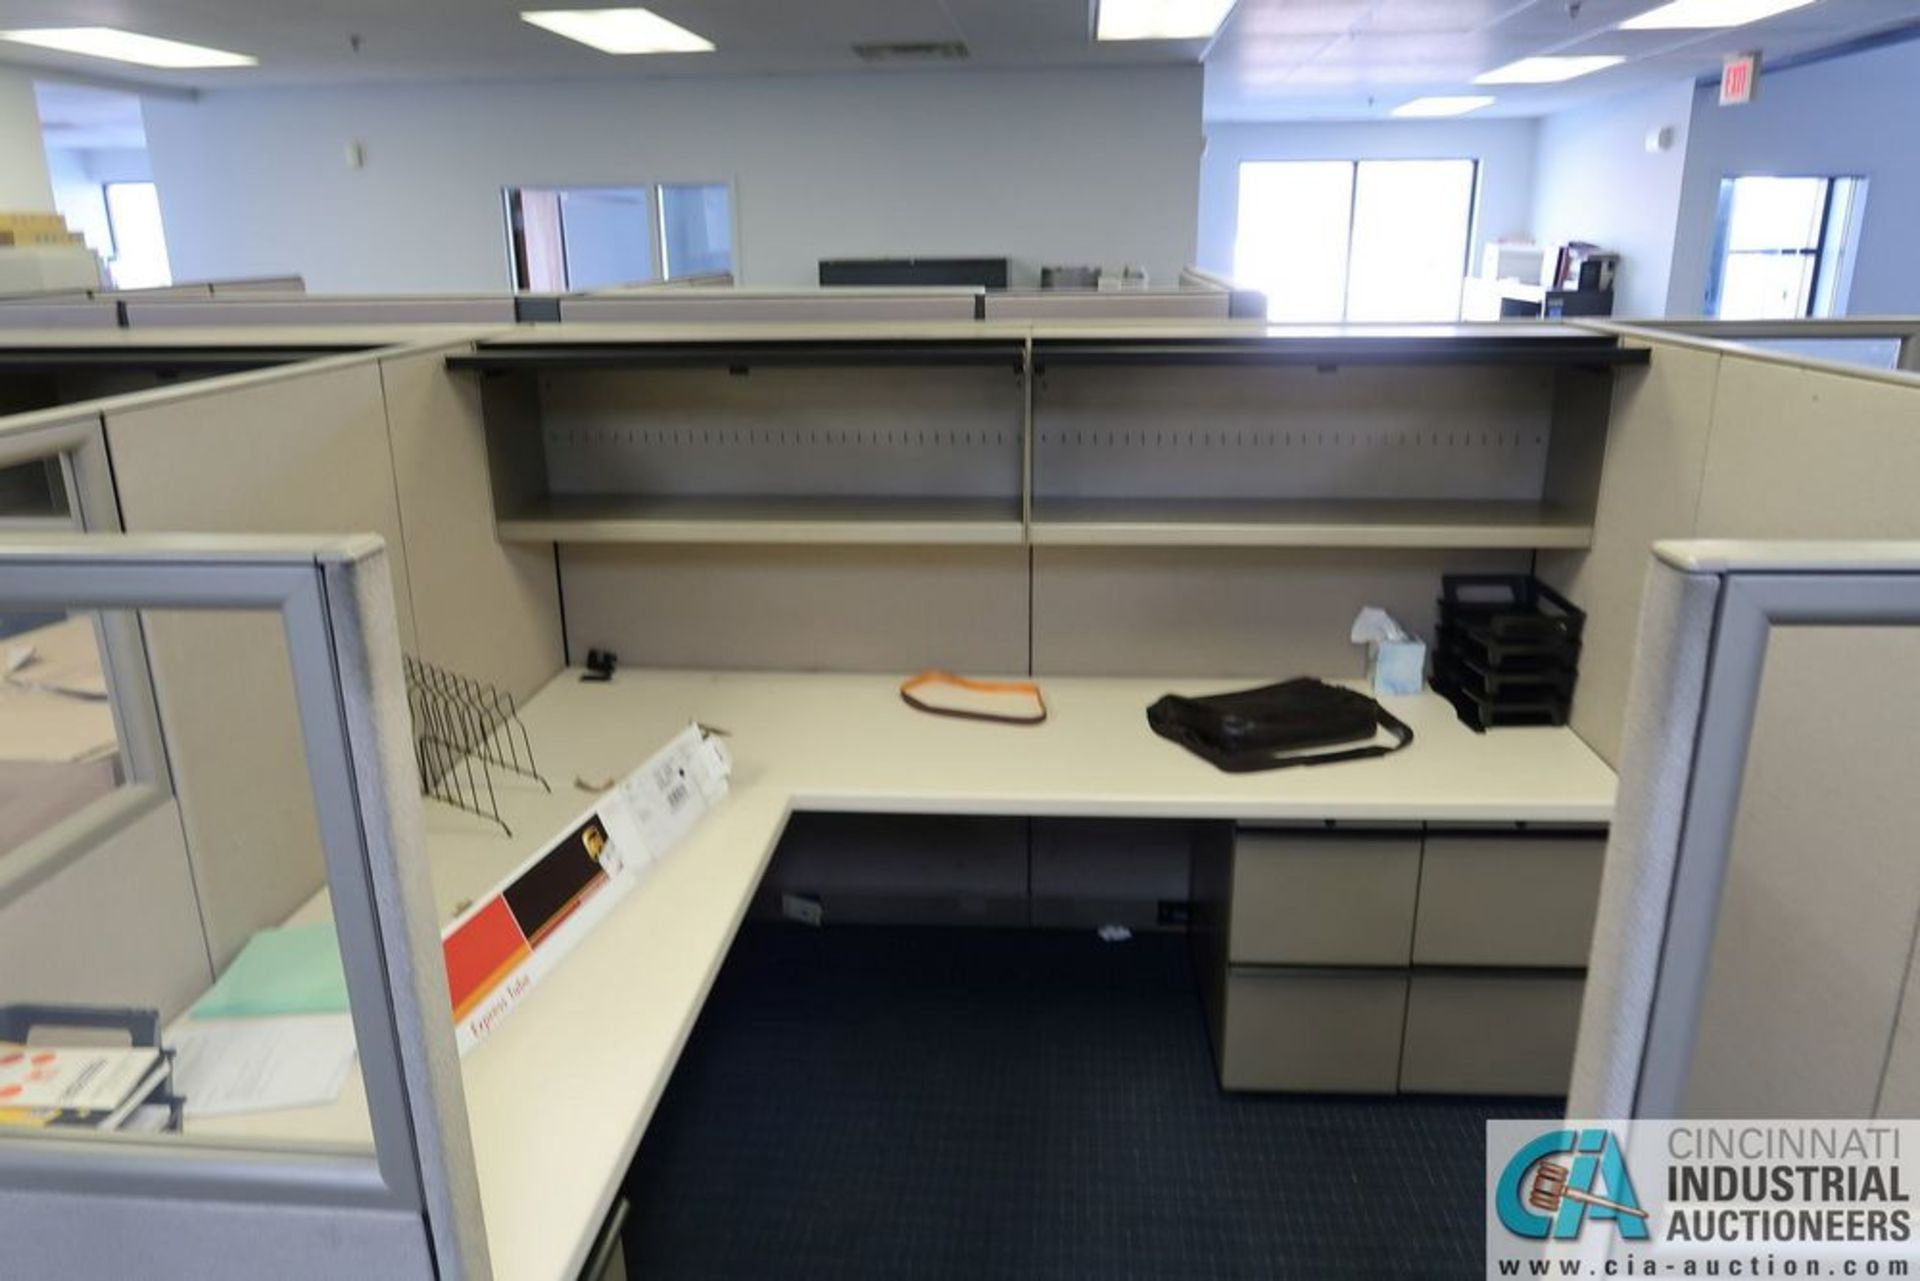 "(LOT) OFFICE CUBICLES, (2) 72"" X 72"", (2) 100"" X 92"", (2) 112"" X 96"", (1) 216"" X 72"" - Image 6 of 10"